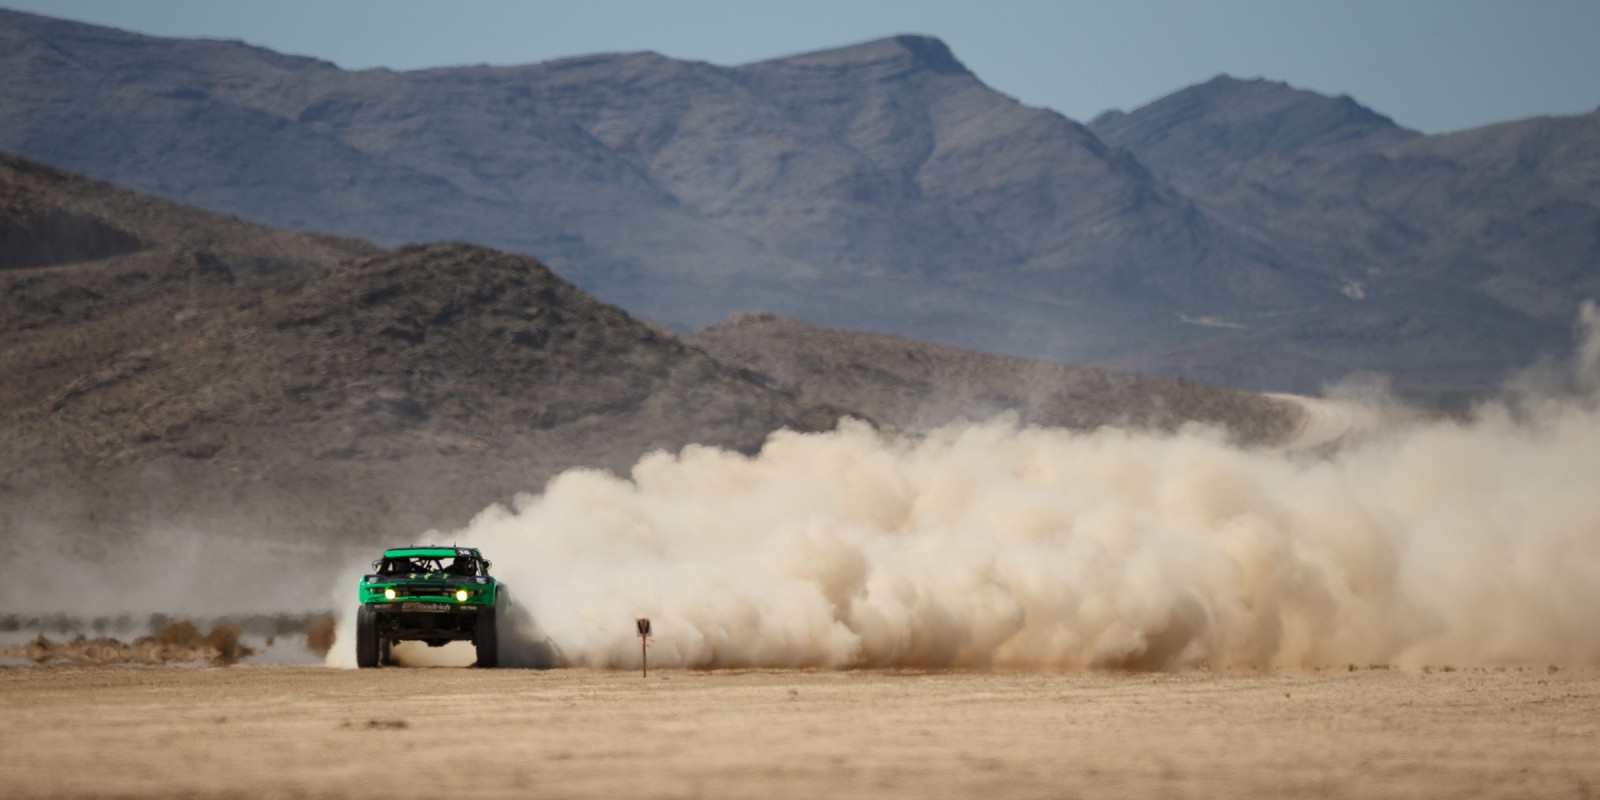 Cameron Steele at Mint 400 - 2016